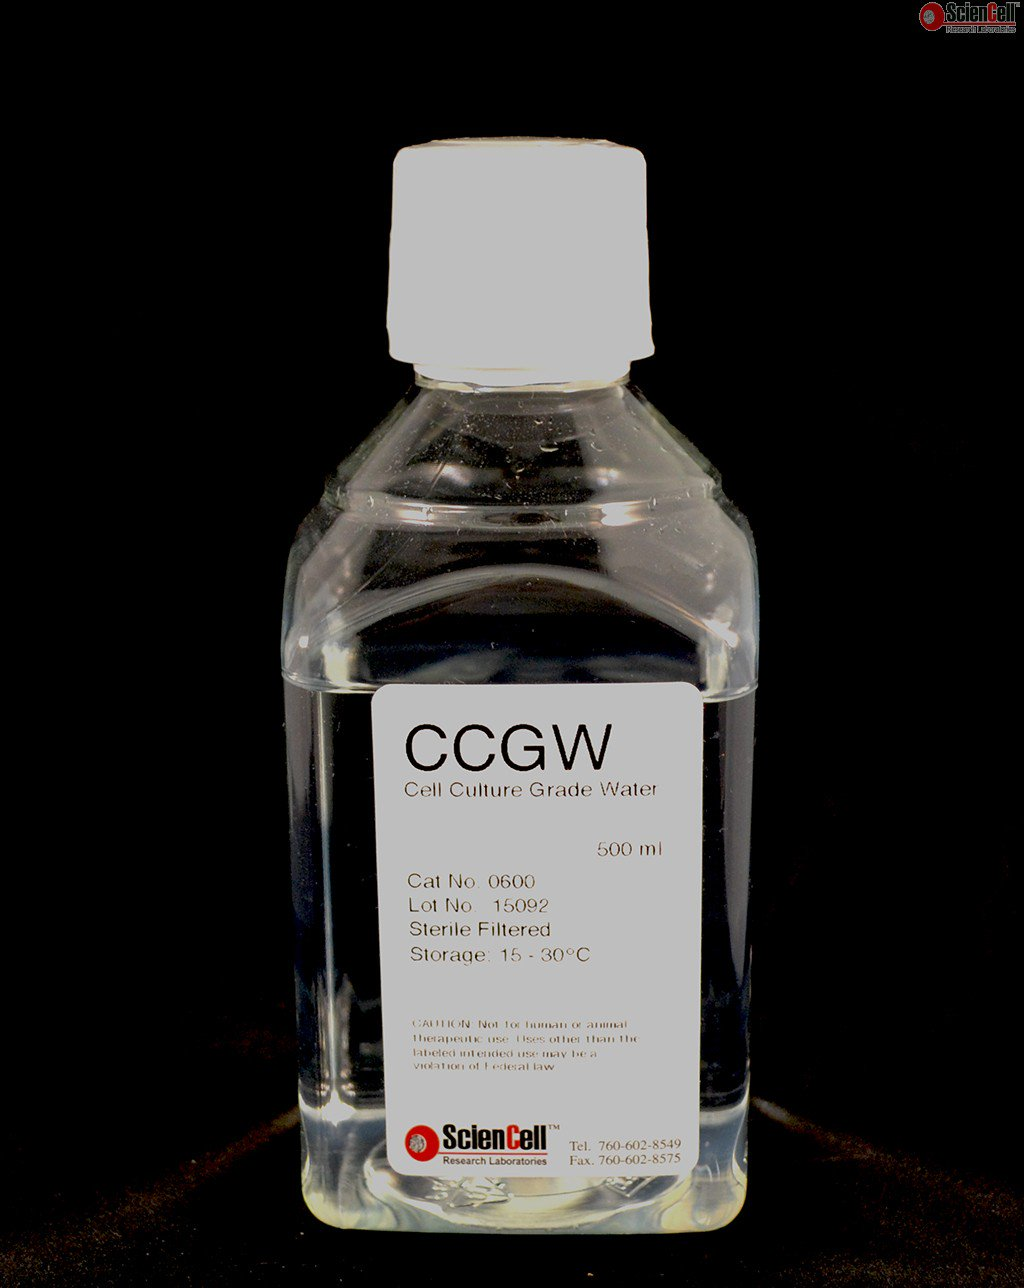 Sciencell/Cell Culture Grade Water, 500 ml/0600/1 Ea